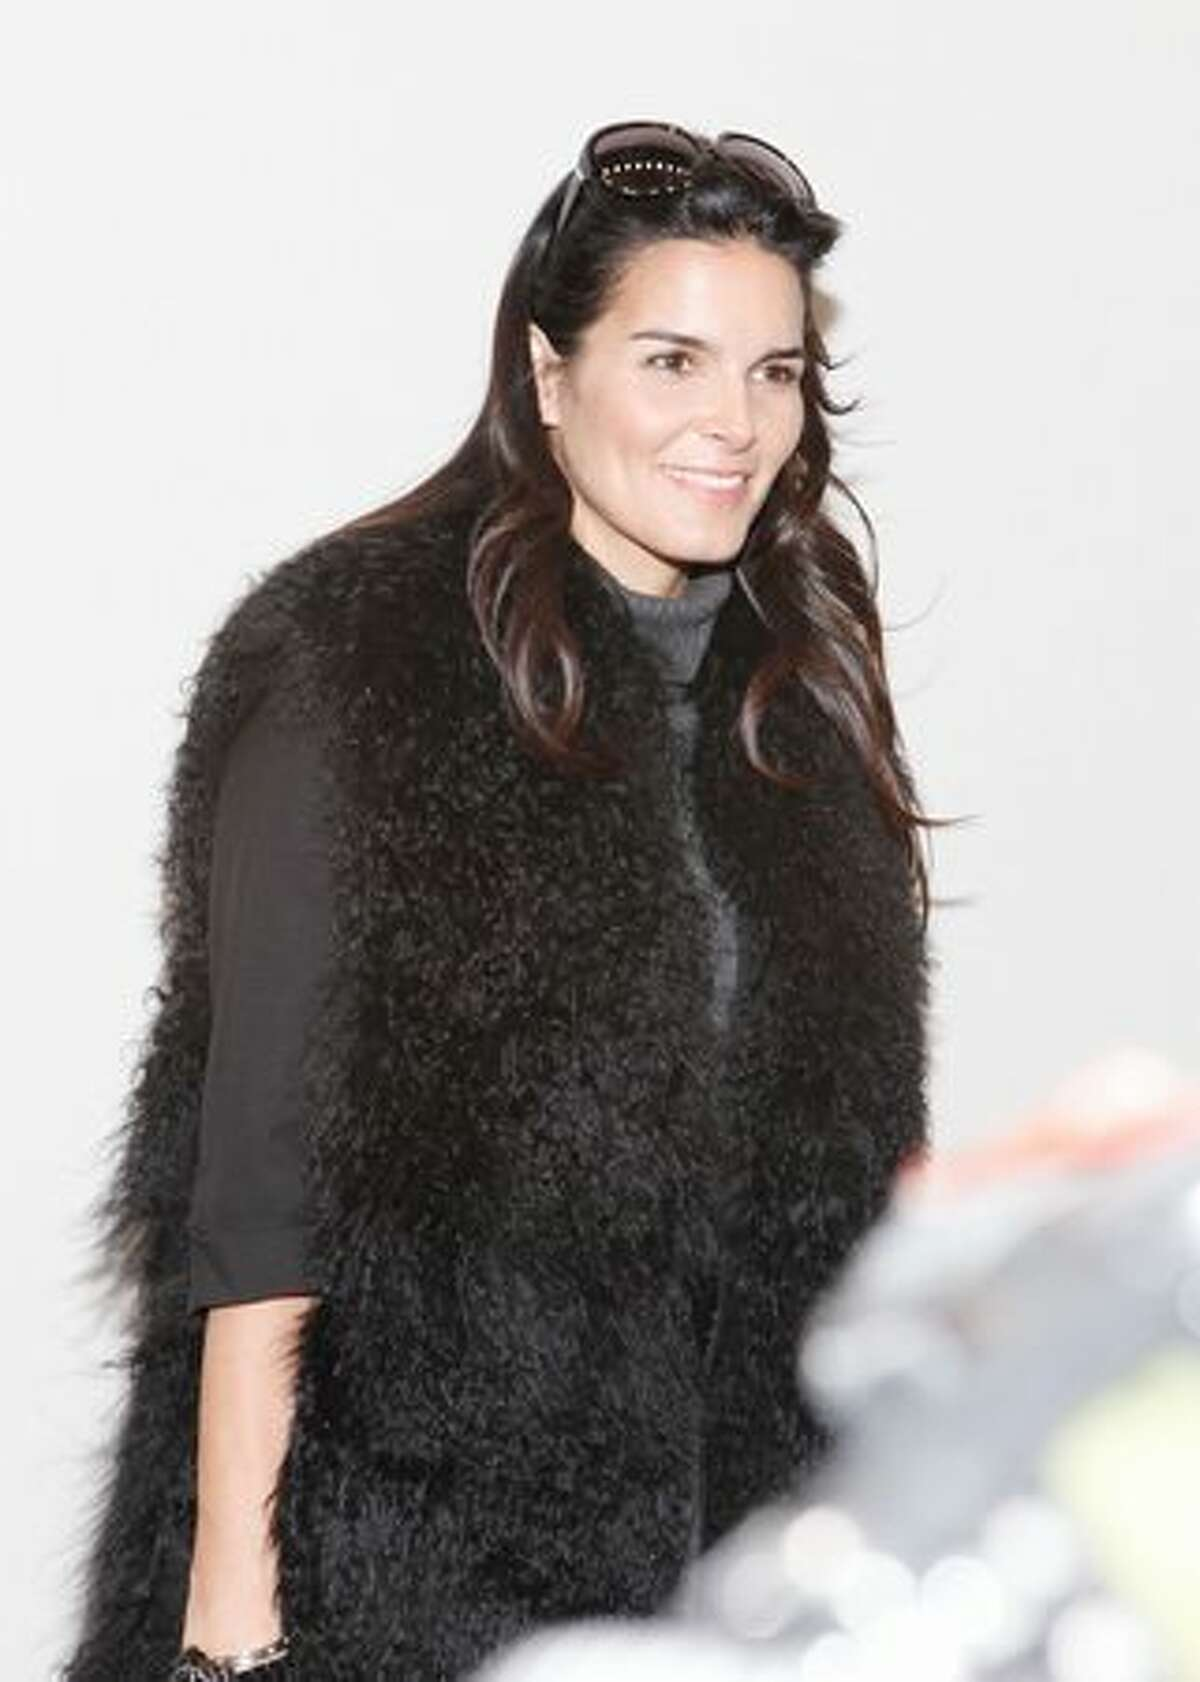 Actress Angie Harmon attends the Michael Kors Fall 2011 show with FIJI Water during Mercedes-Benz Fashion Week at The Theatre at Lincoln Center in New York City.